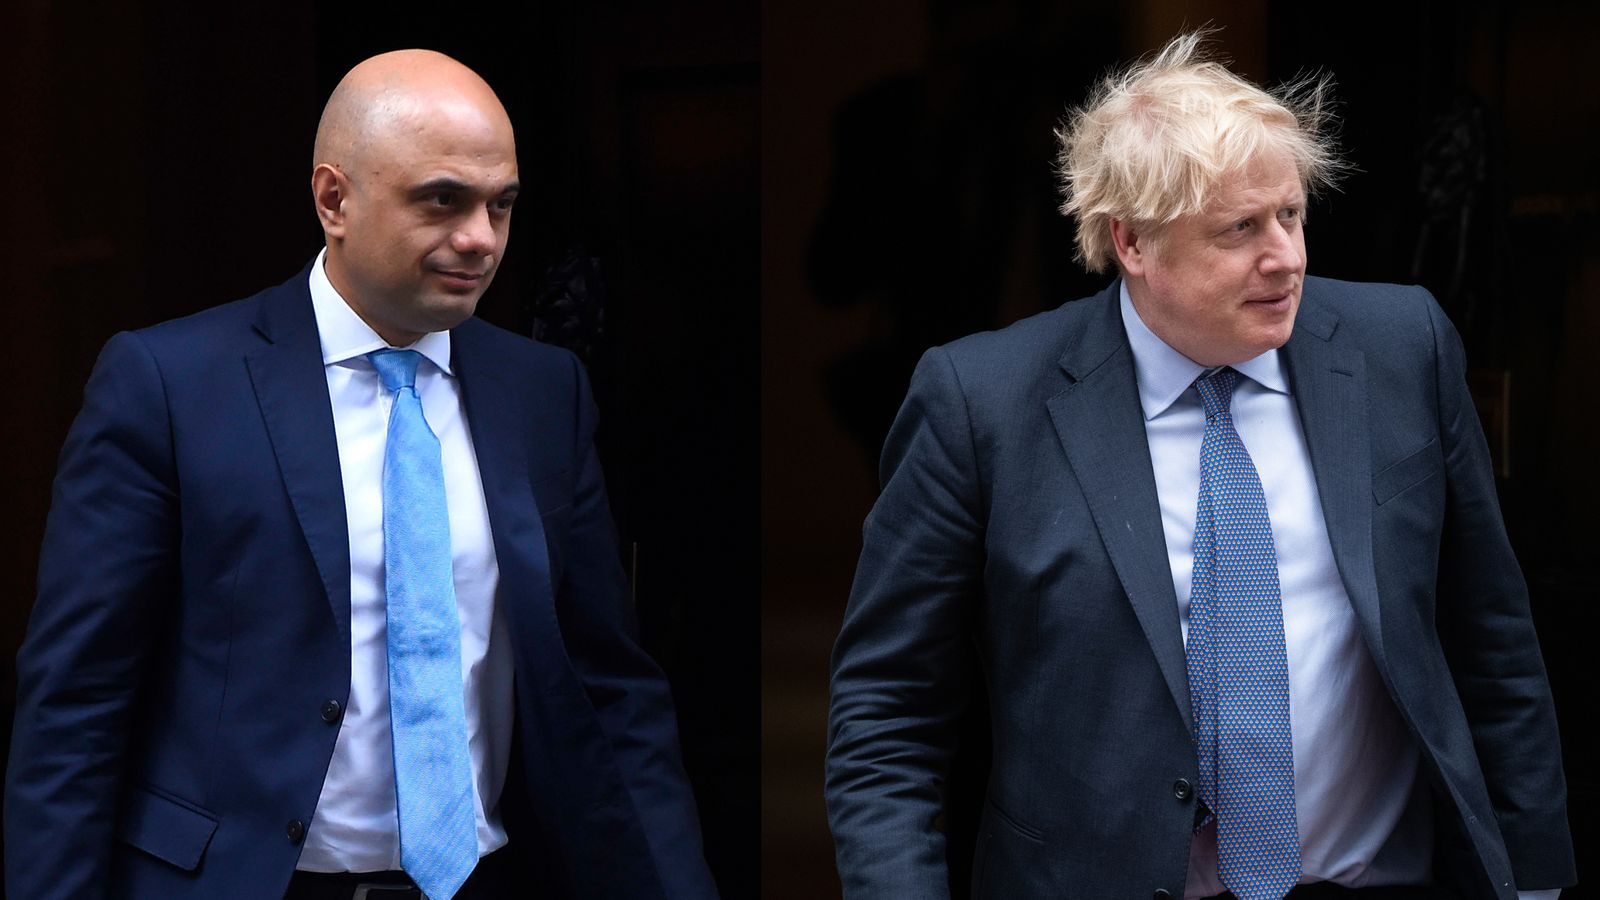 PM gathers new top team after Javid's shock resignation